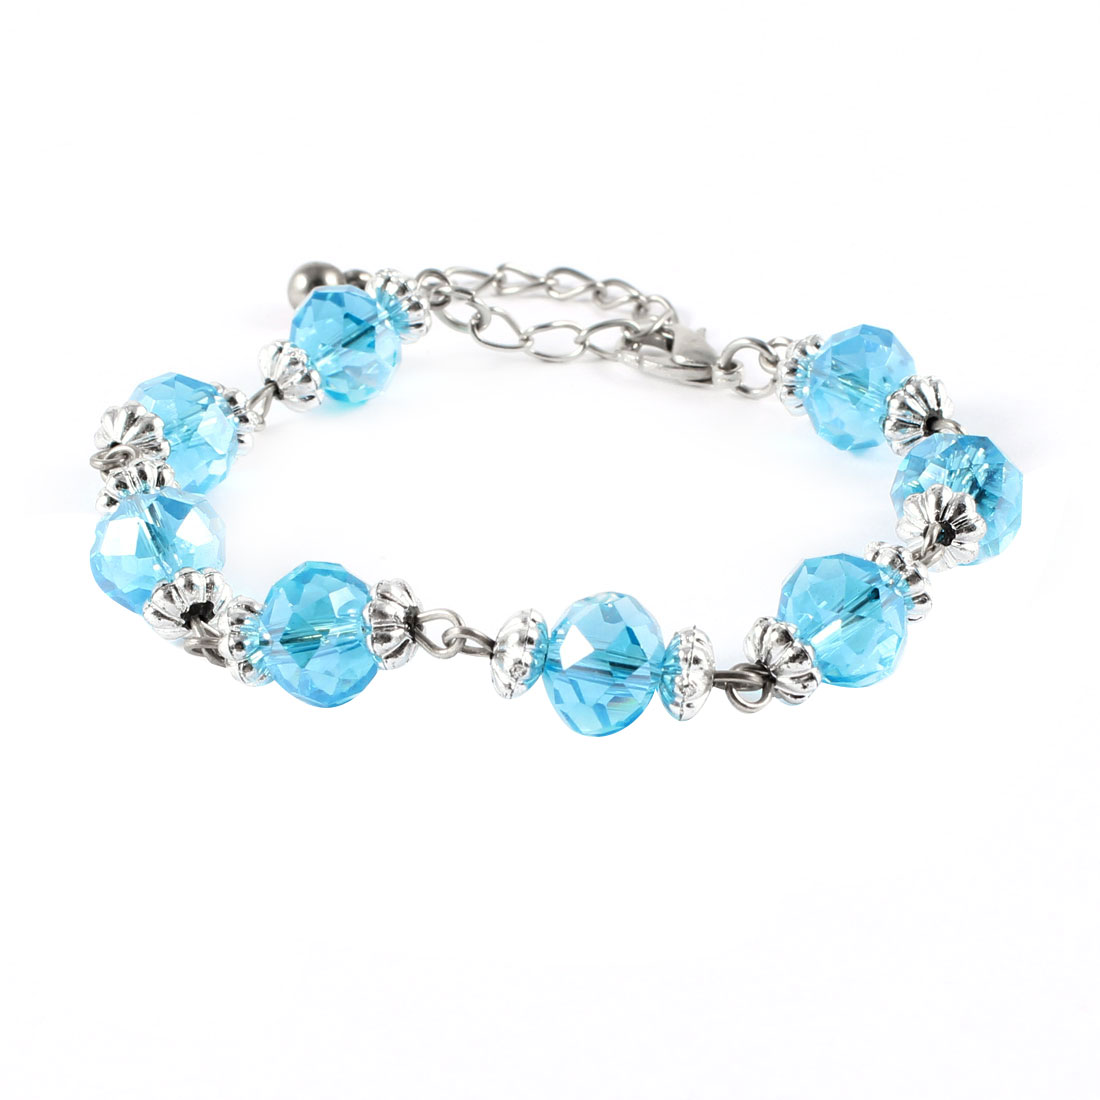 Blue Plastic Crystal Adjustable Bracelet Bangle for Lady Woman